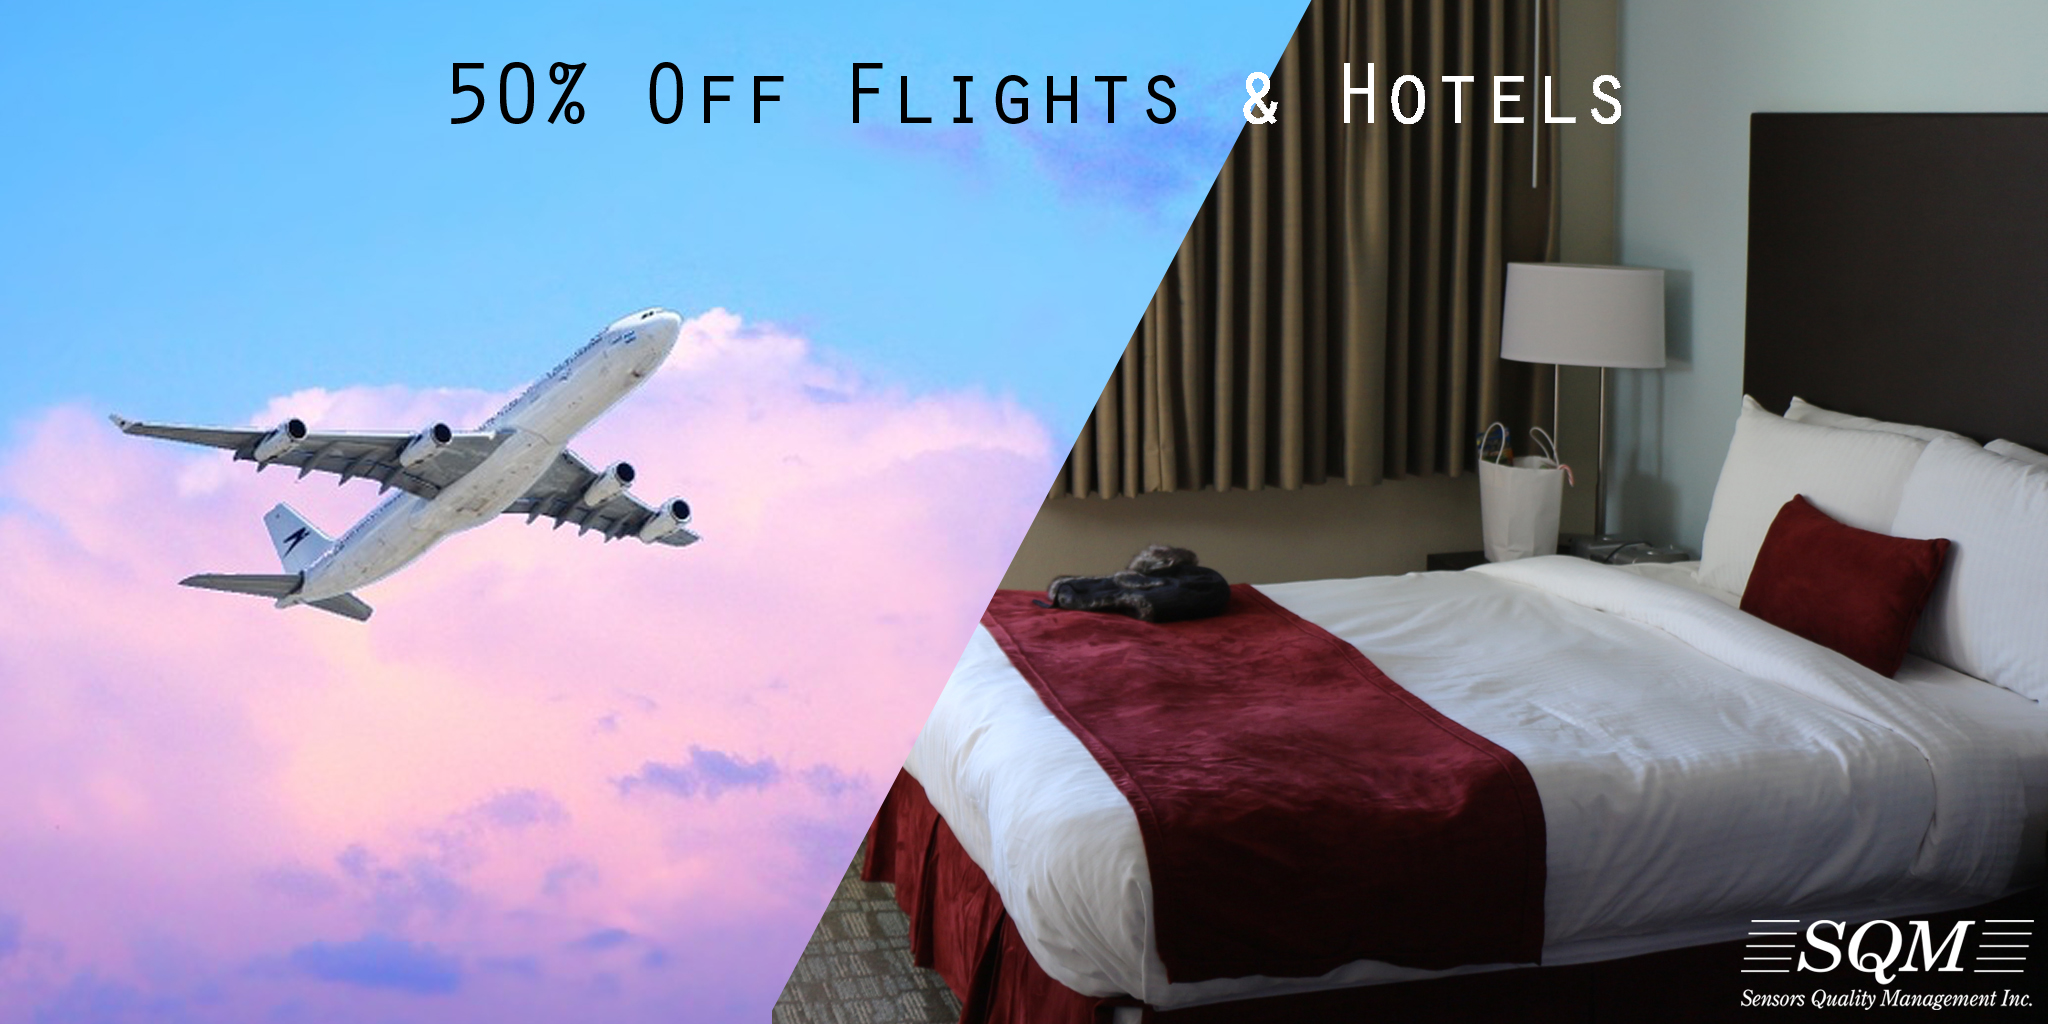 50% Off Flights and Hotels